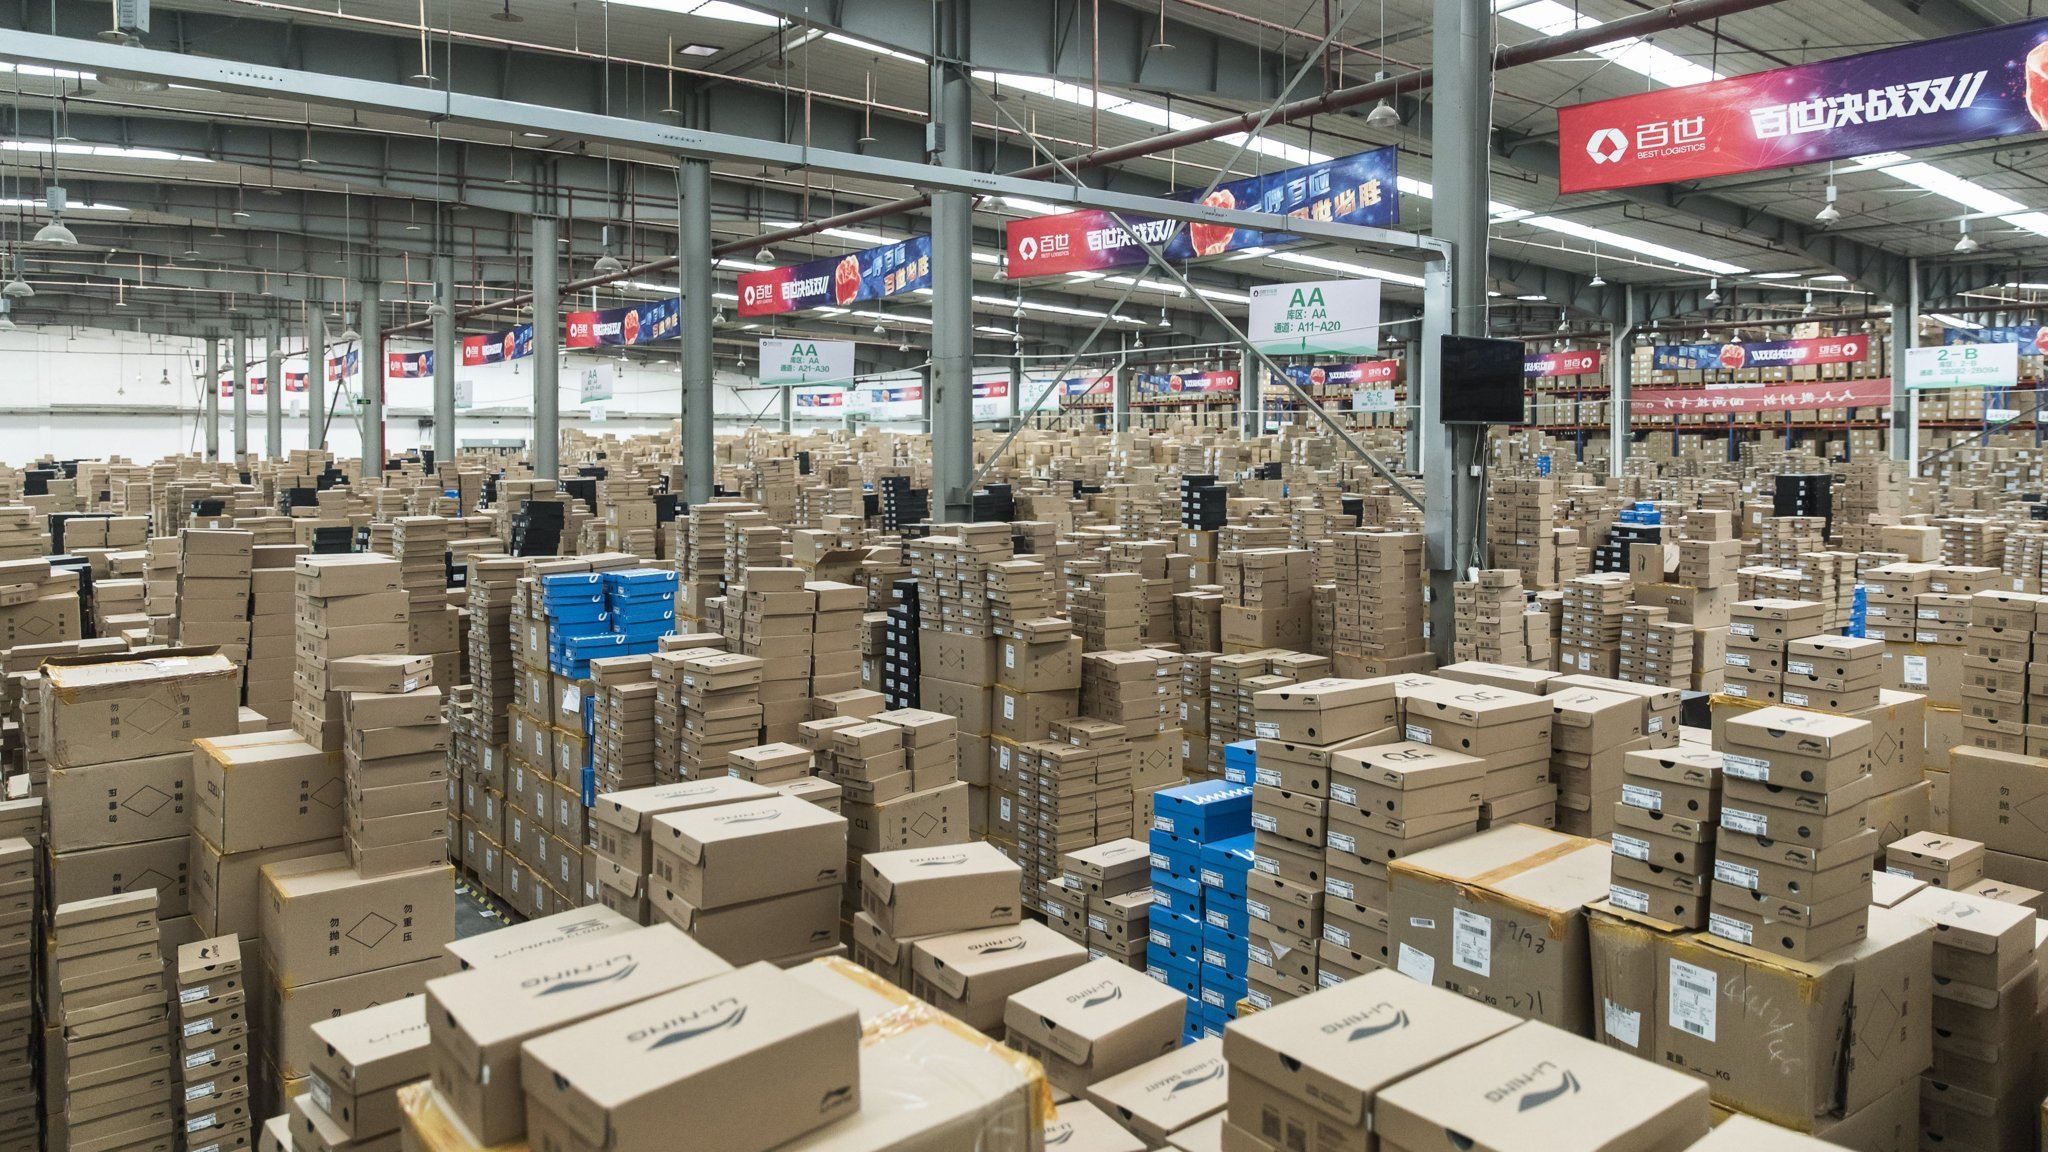 China ecommerce boom fires up logistics sector   Financial Times